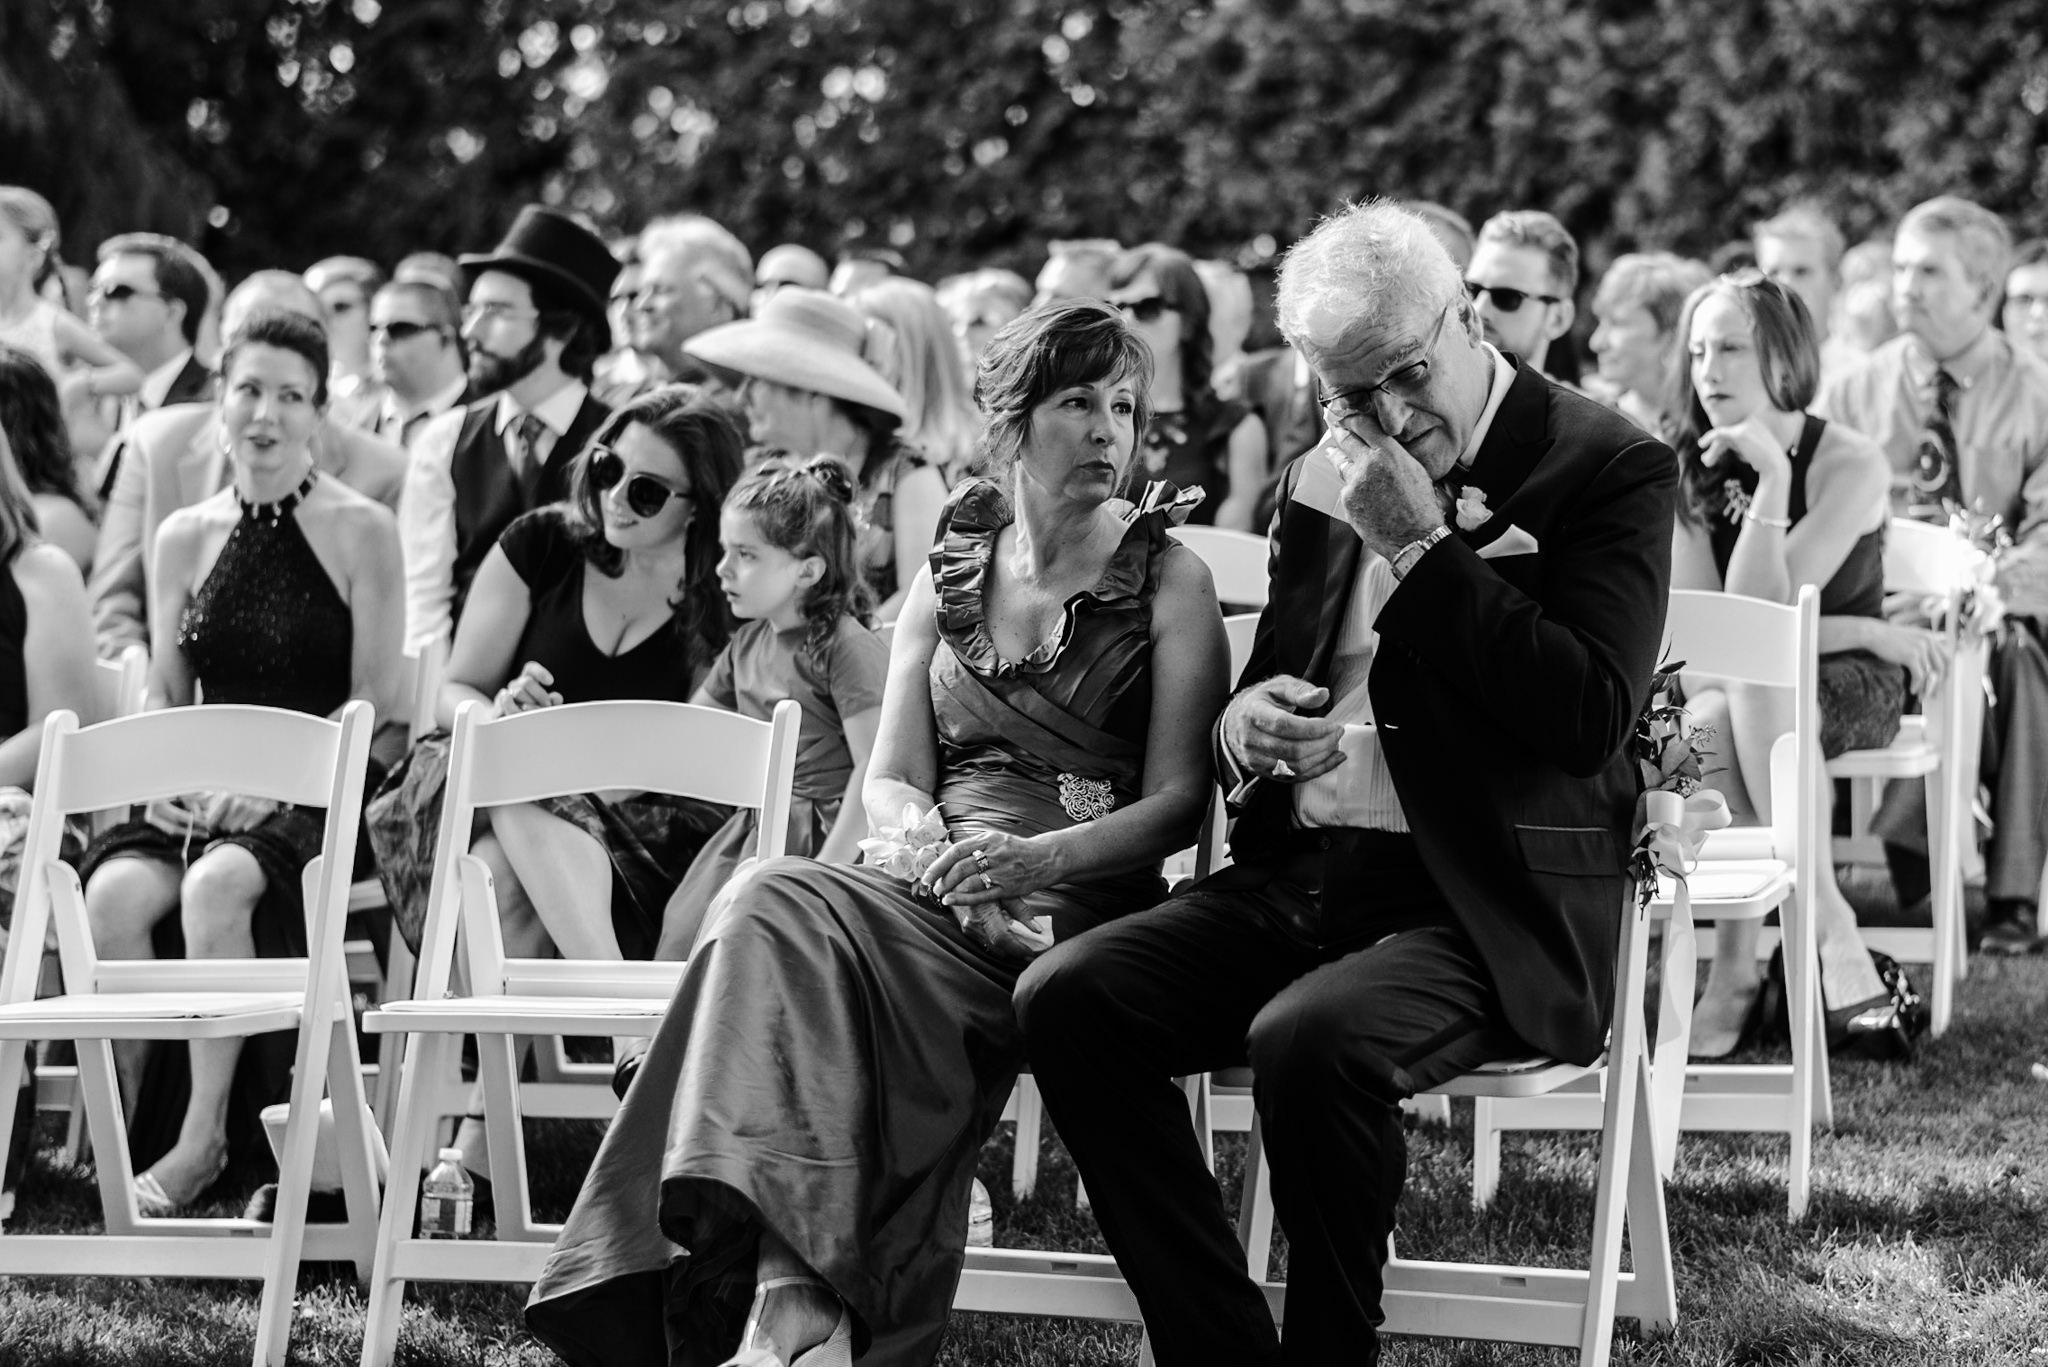 256-wedding-ceremony-penryn-park-outdoor-toronto-photographer.jpg